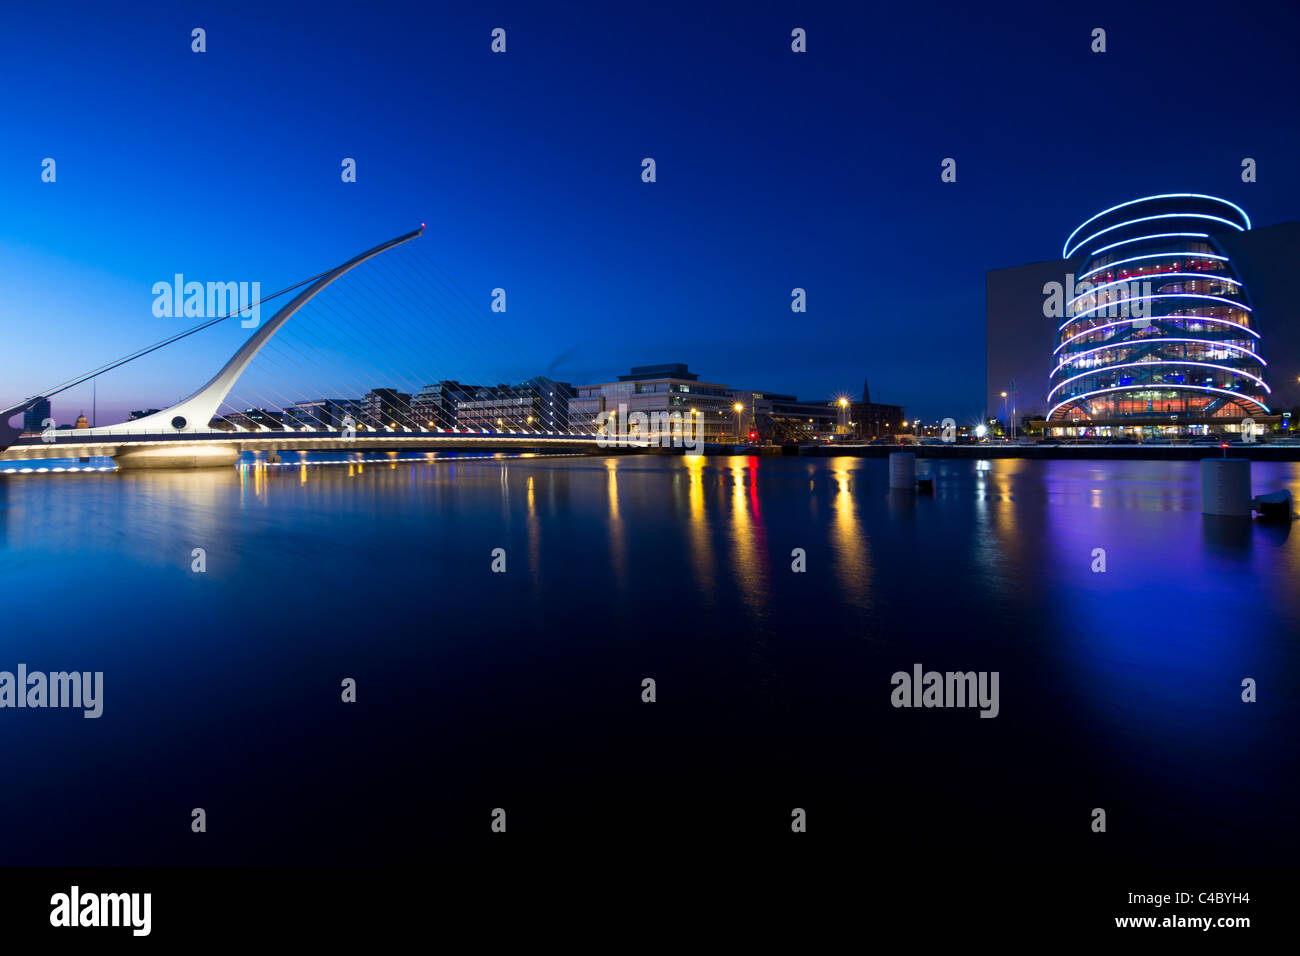 Samuel Beckett bridge, Dublin Stock Photo